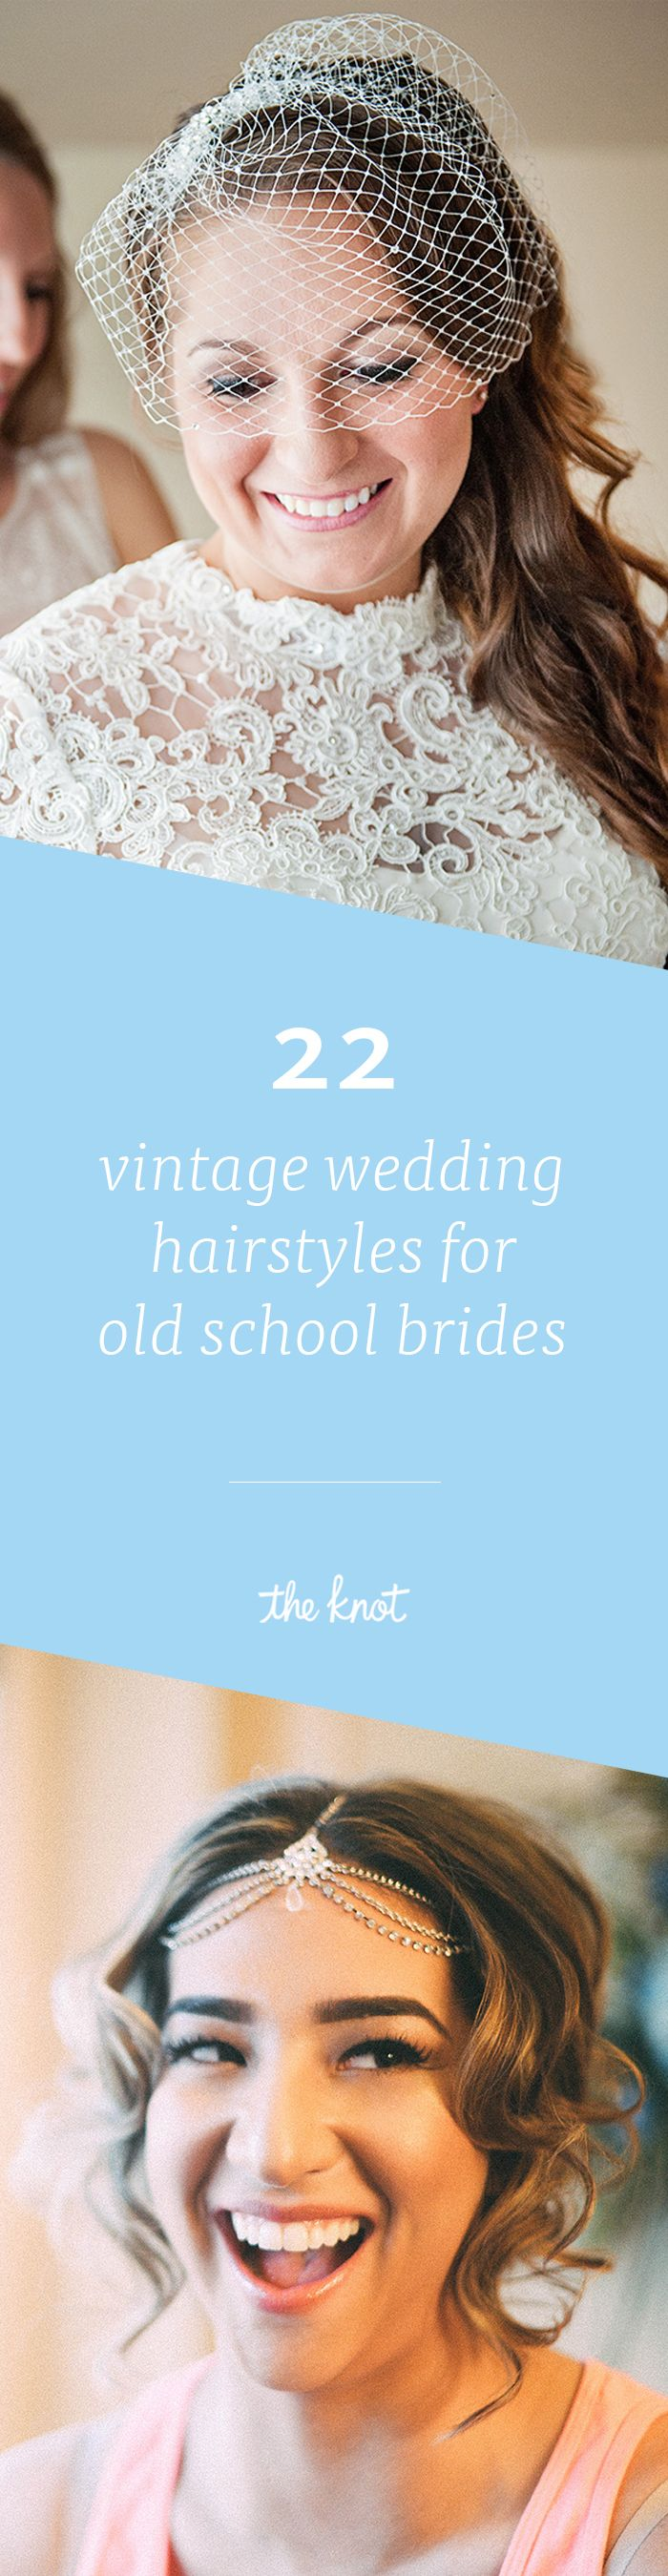 For long, medium length or short hair—we have the perfect vintage wedding hairstyle for you!